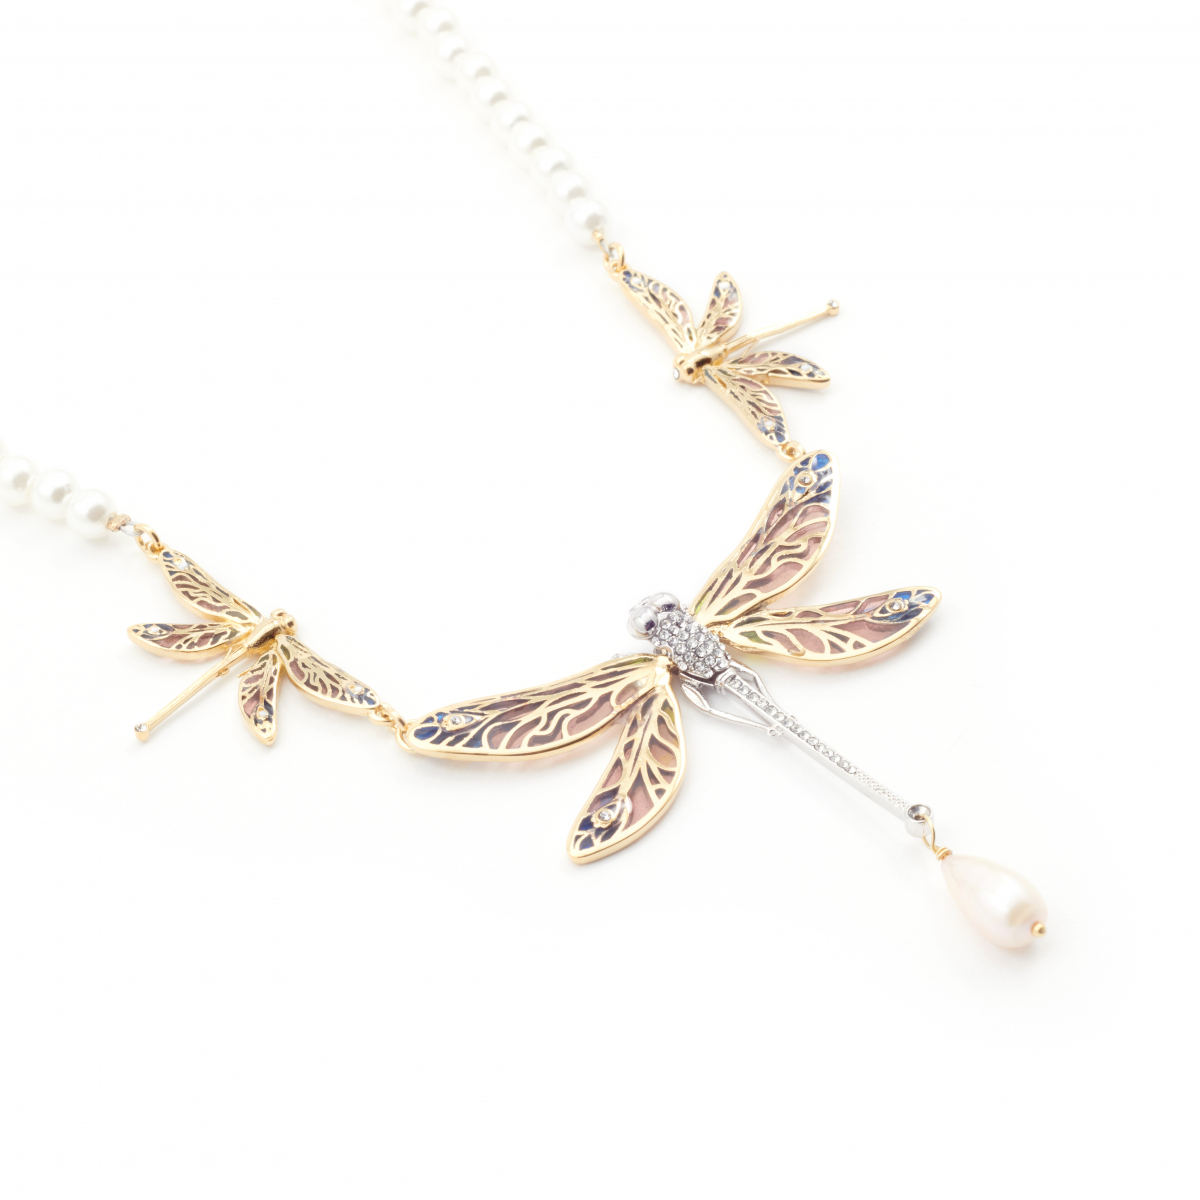 Archive Dragonfly Pearl Necklace